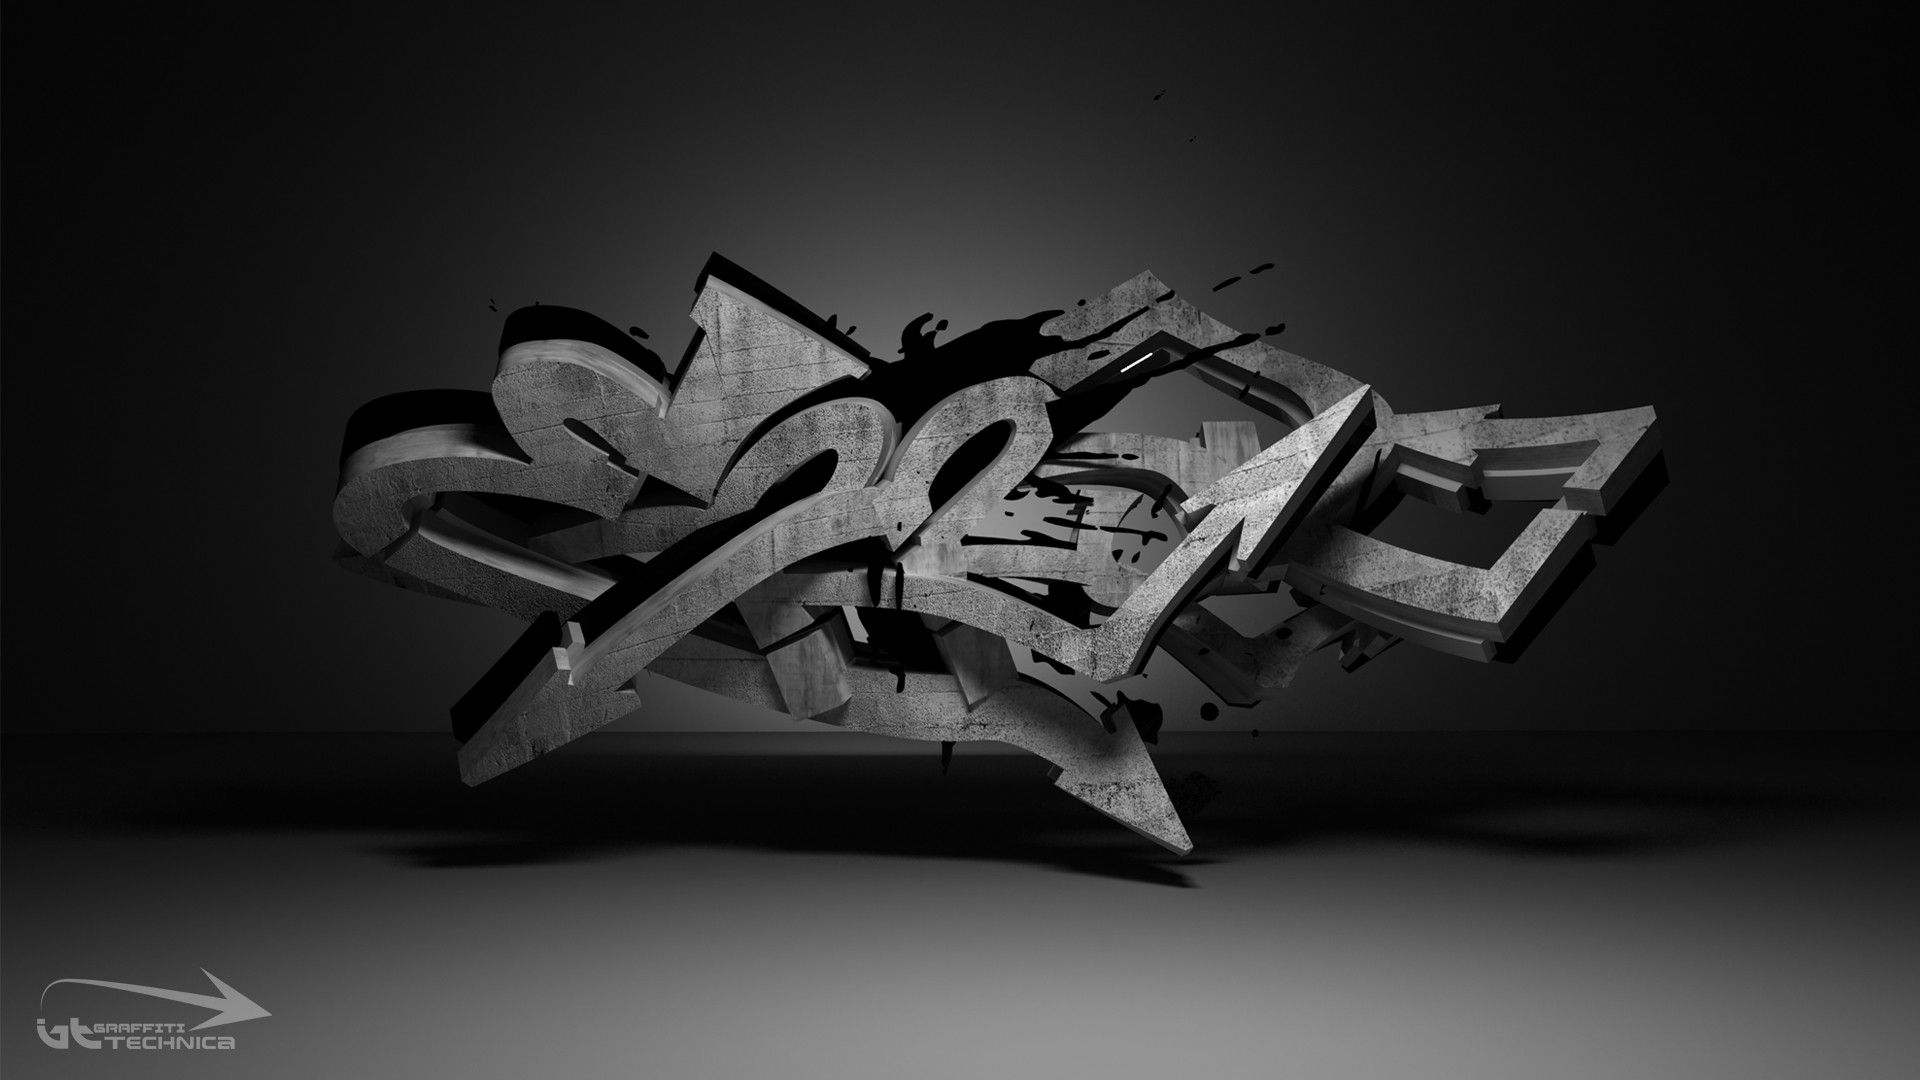 Graffiti font hd backgrounds best wallpaper hd